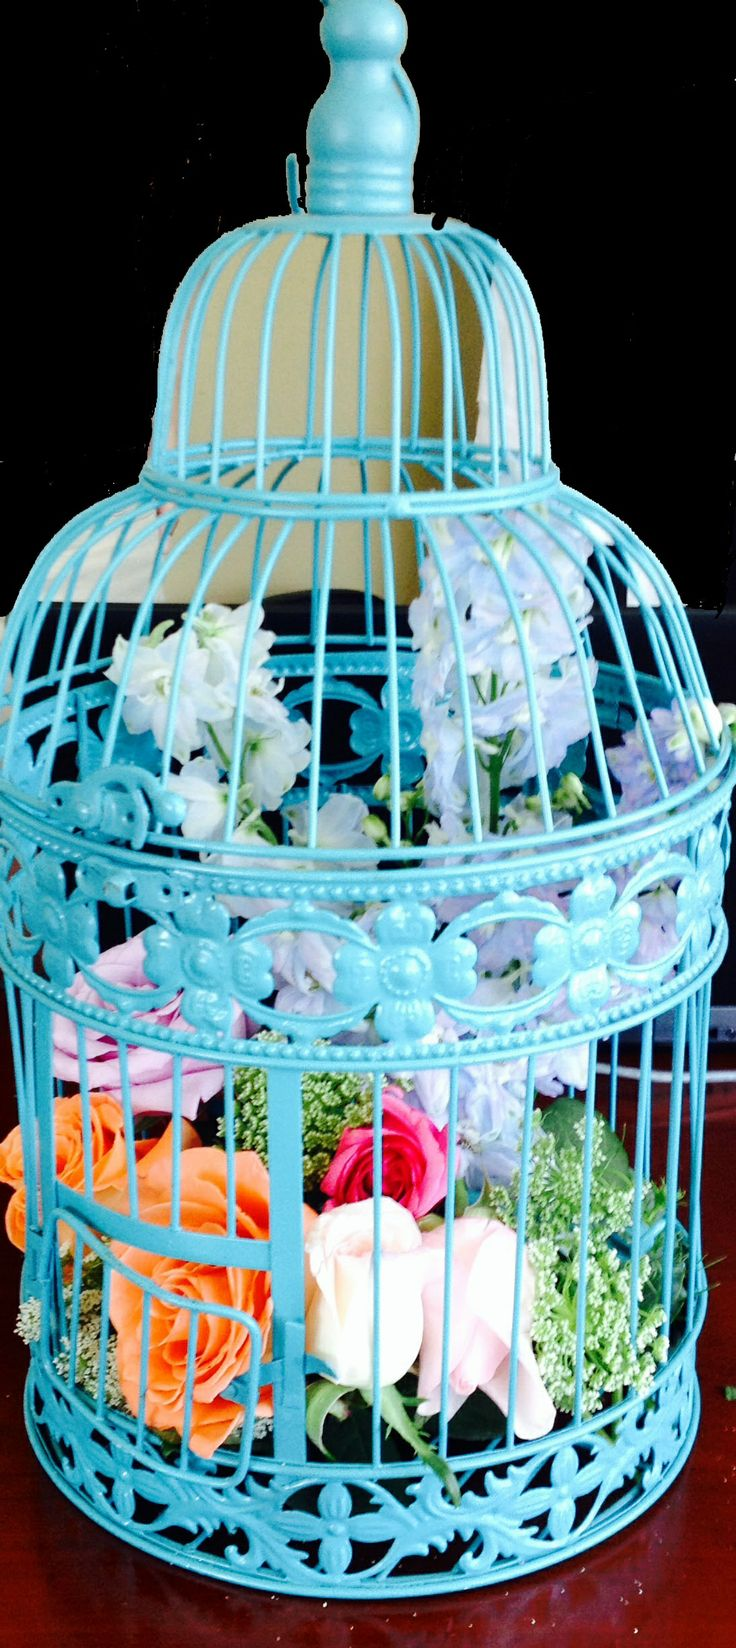 646 best jaulas decorativas images on pinterest bird - Plantas artificiales decorativas ...